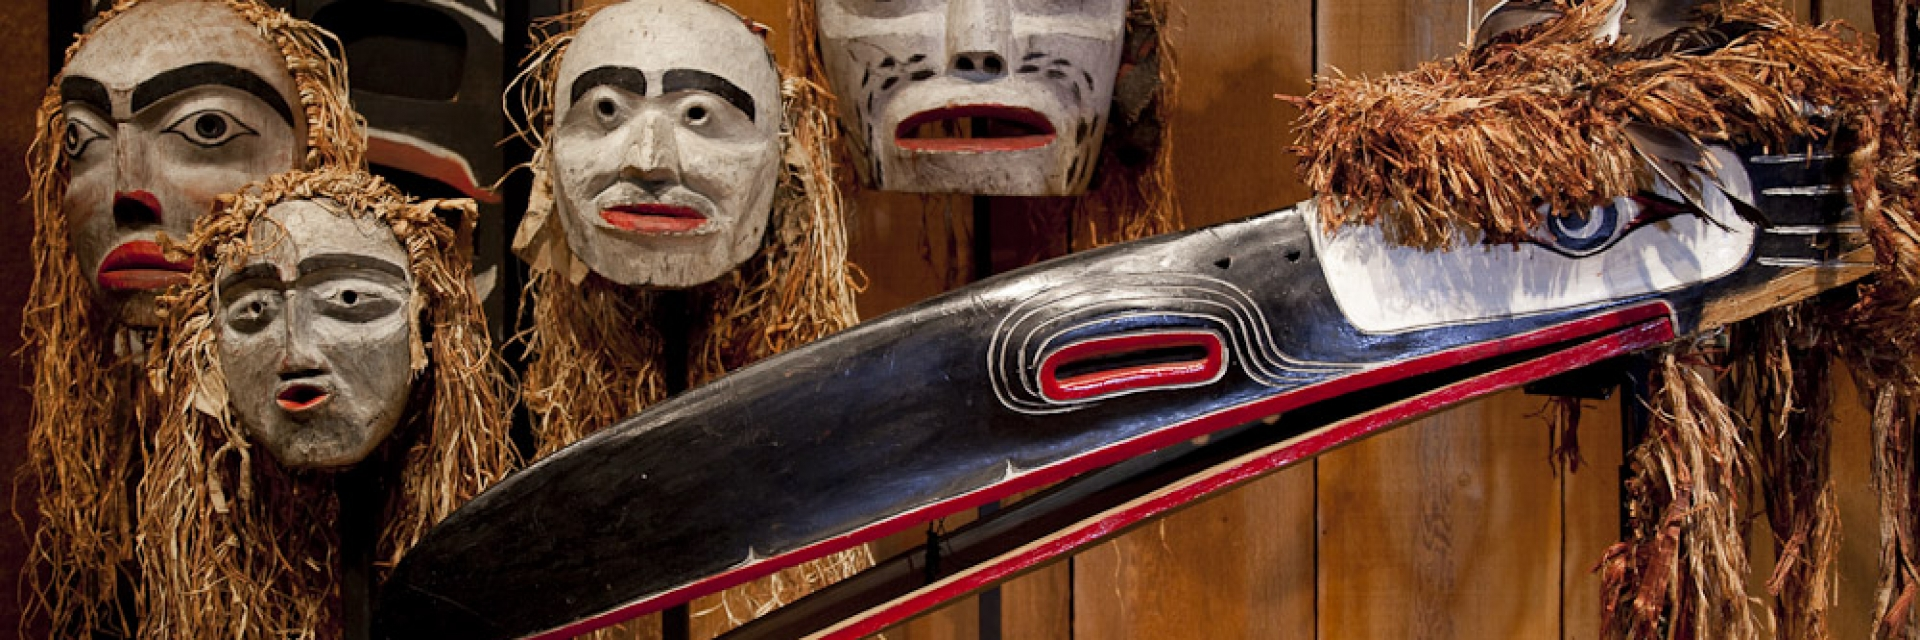 A collection of Indigenous masks hung on a wooden wall